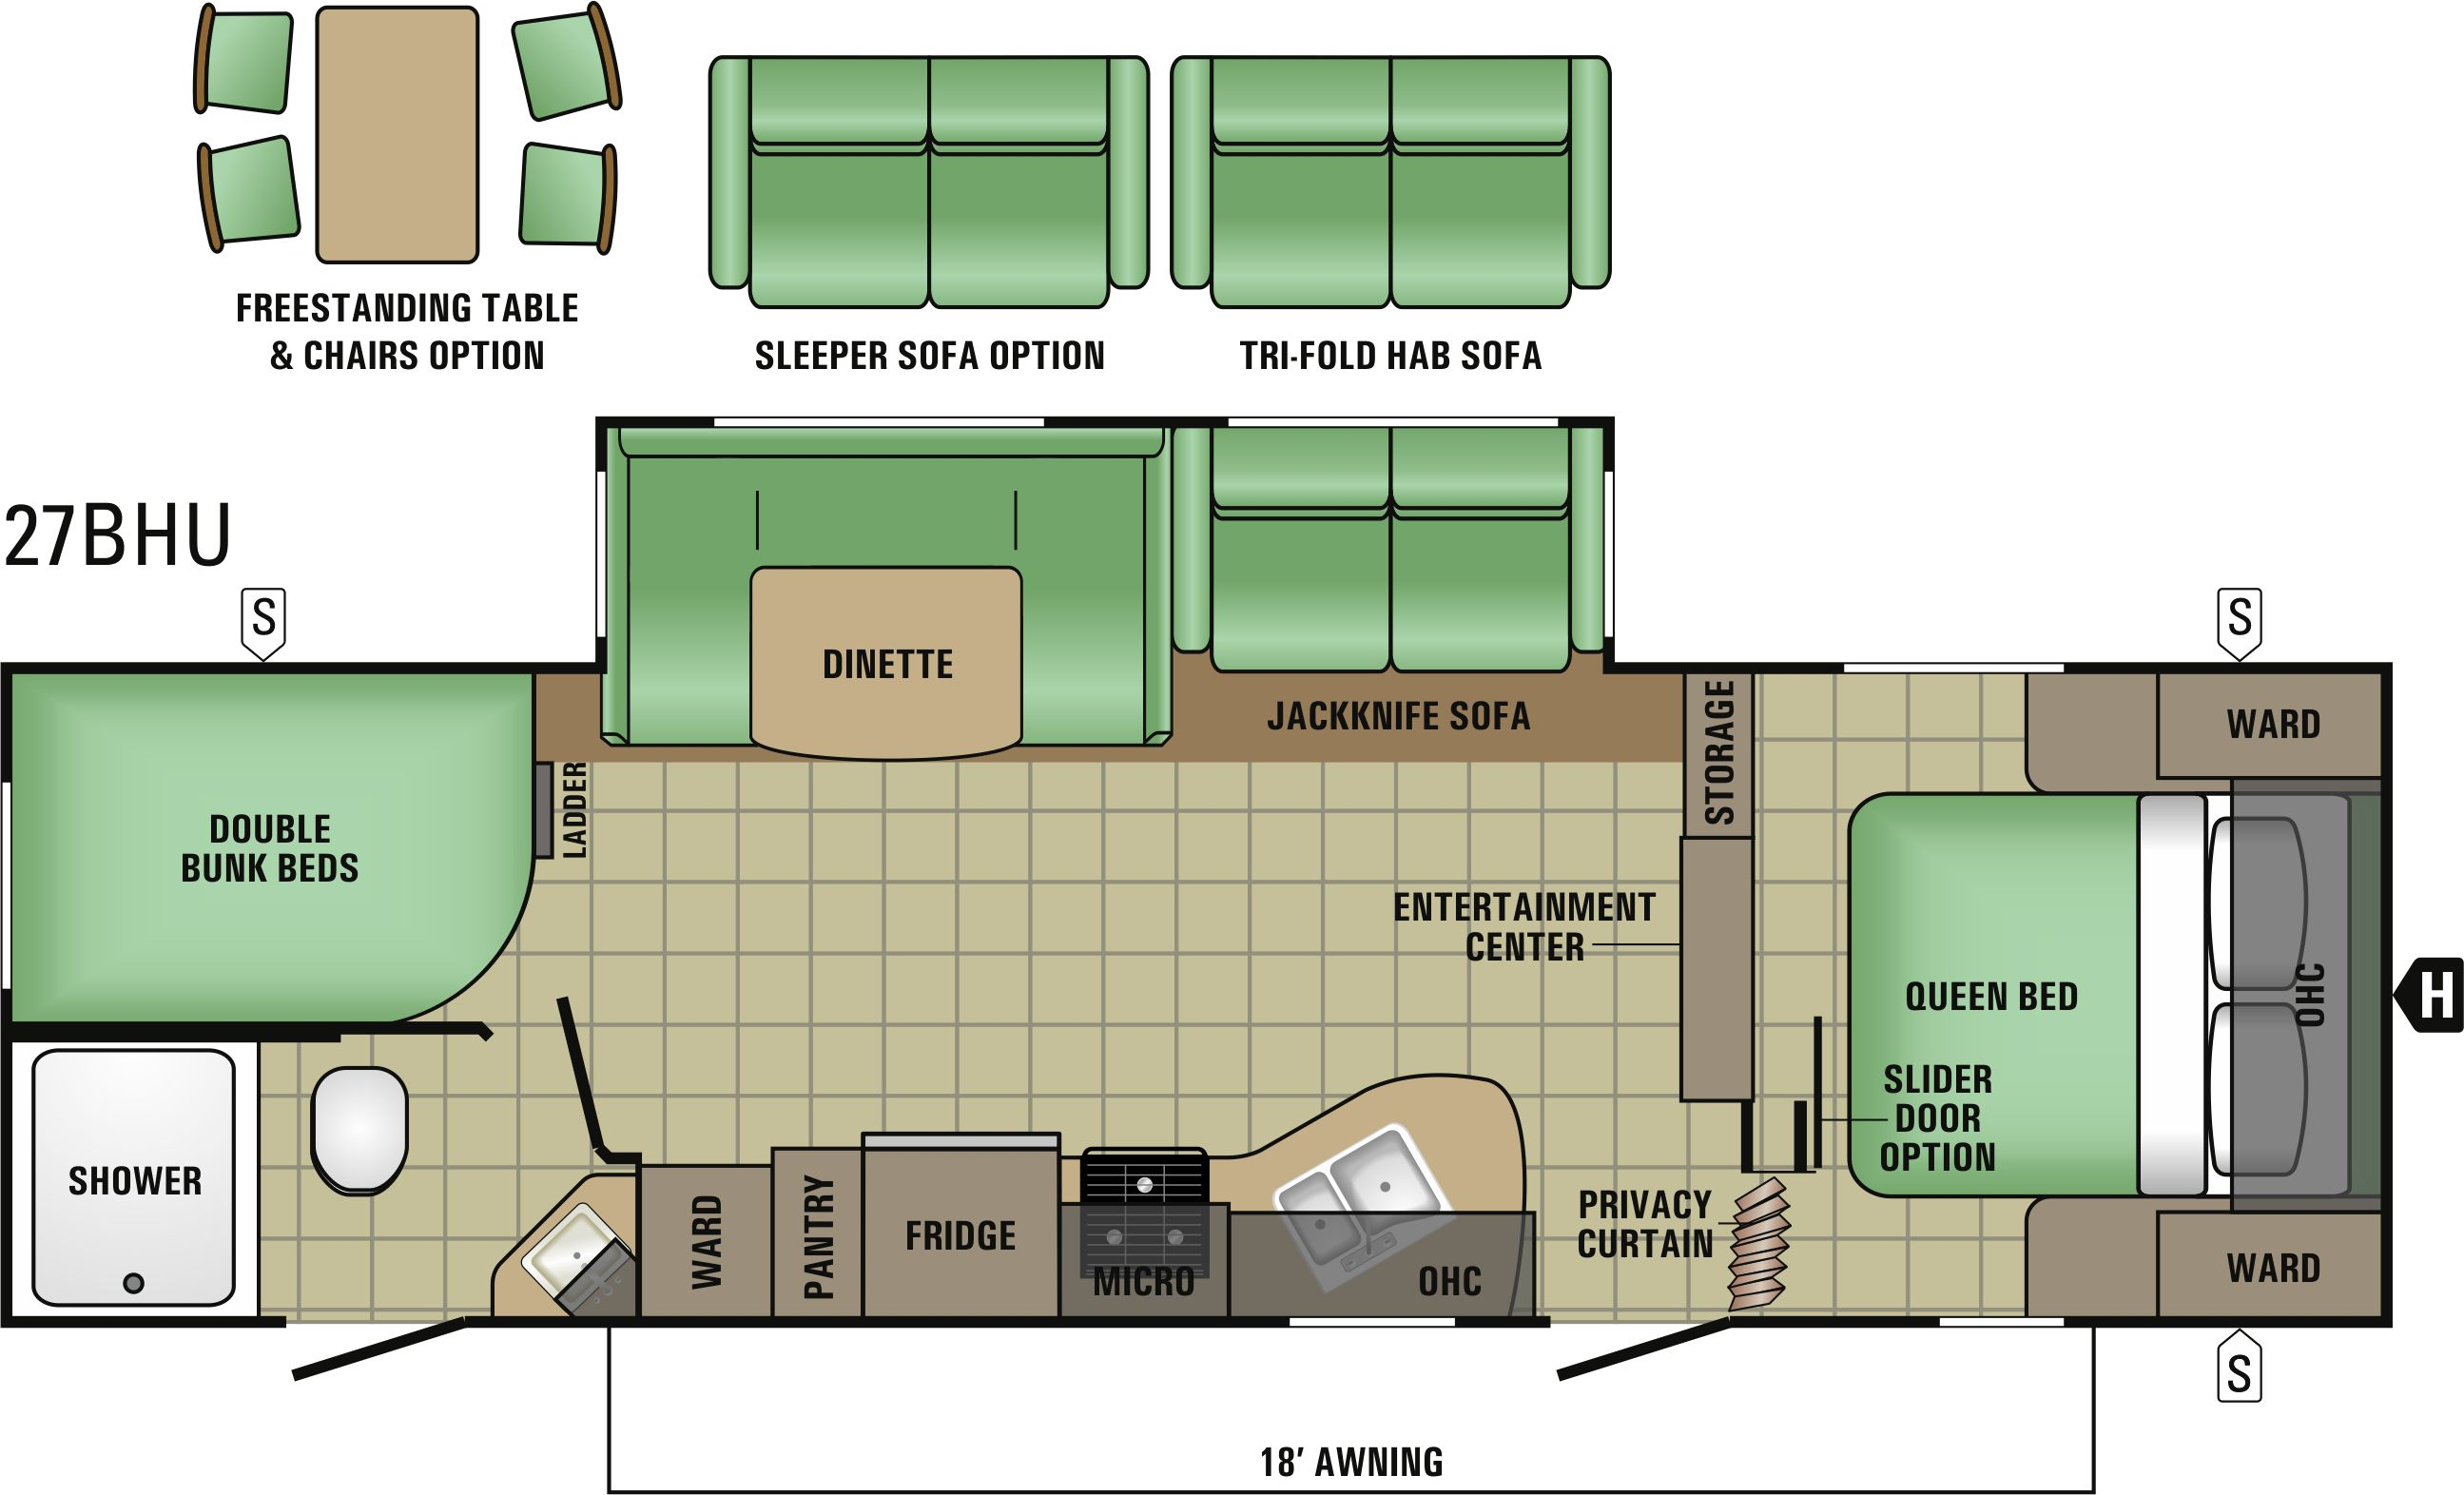 27BHU Floorplan